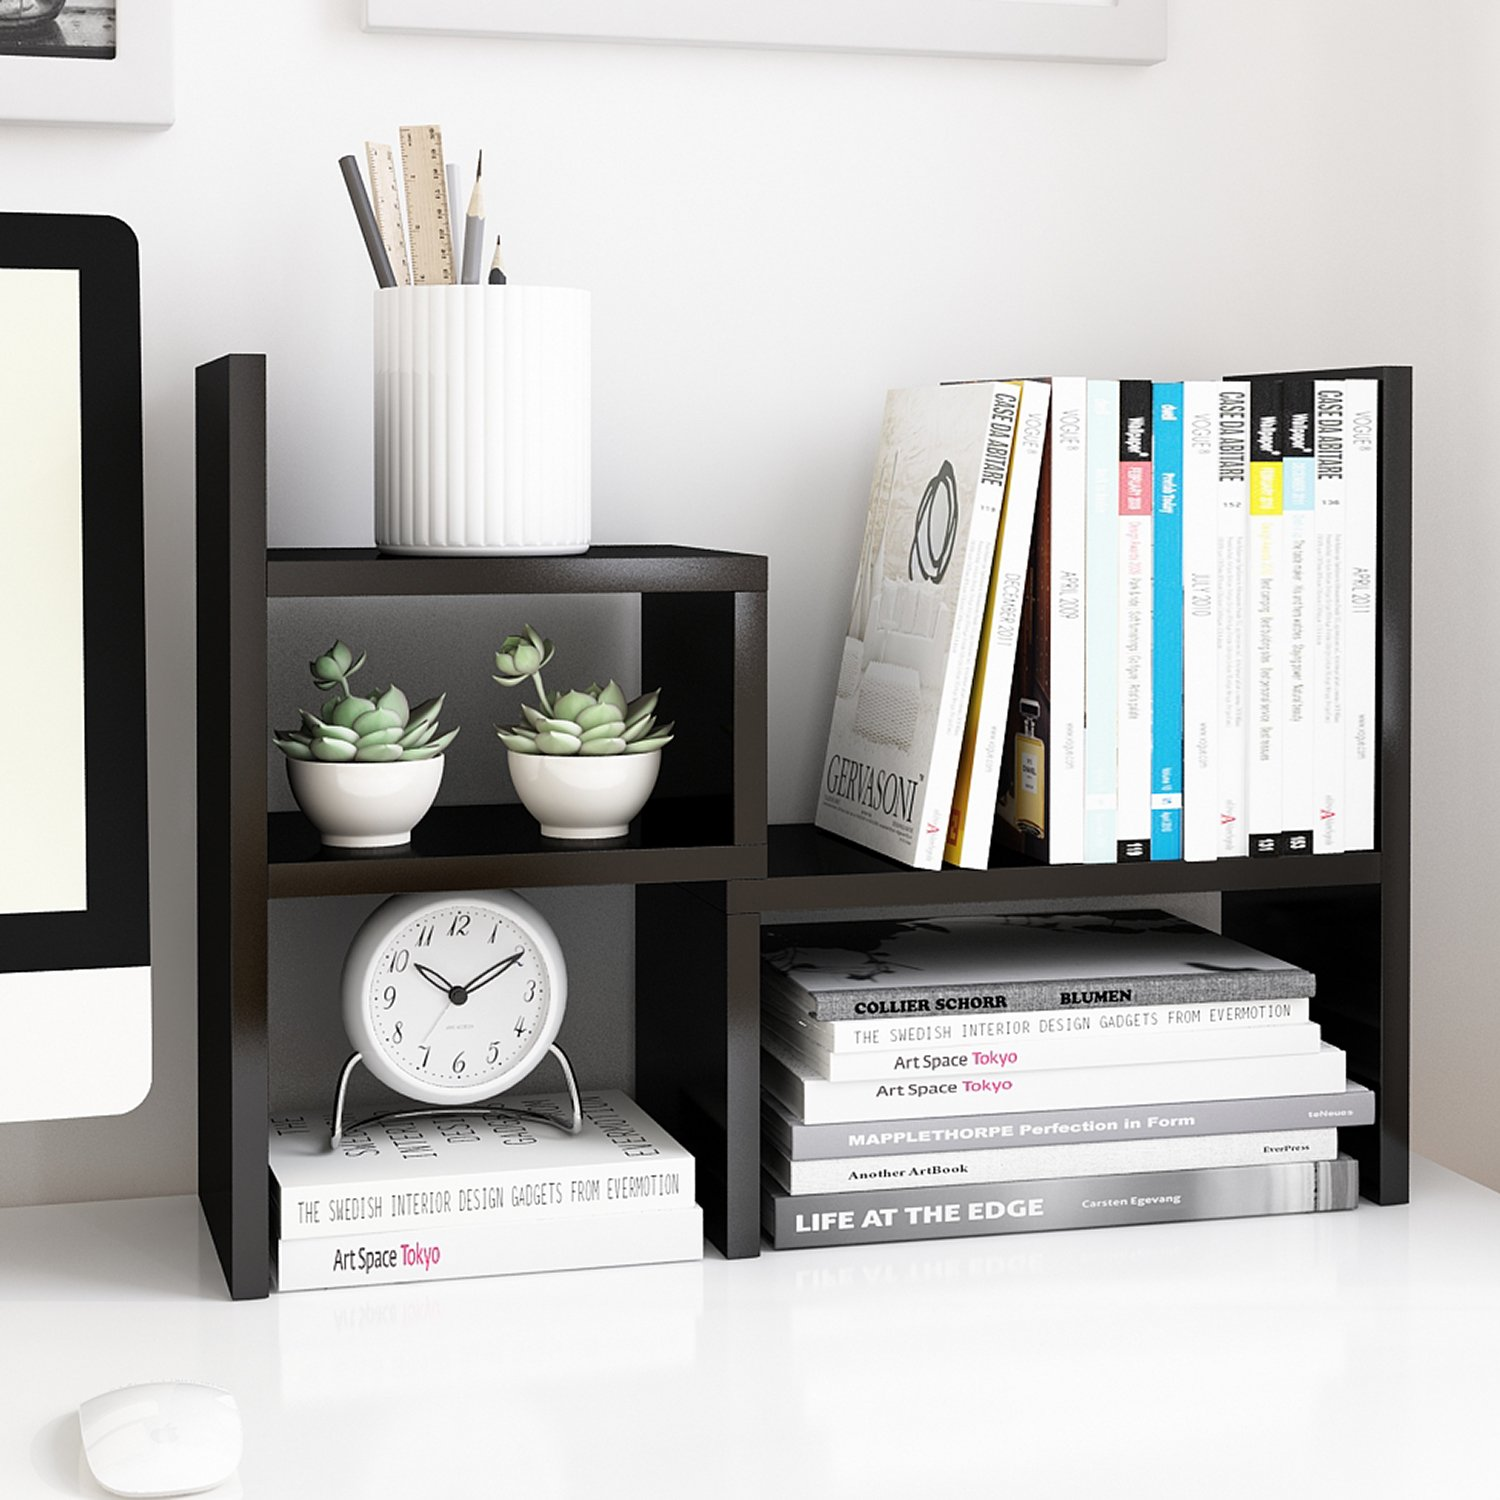 Jerry & Maggie - Desktop Organizer Office Storage Rack Adjustable Wood Display Shelf | Birthday Gifts - Toy - Home Decor | - Free Style Rotation Display - True Natural Stand Shelf Black by Jerry & Maggie